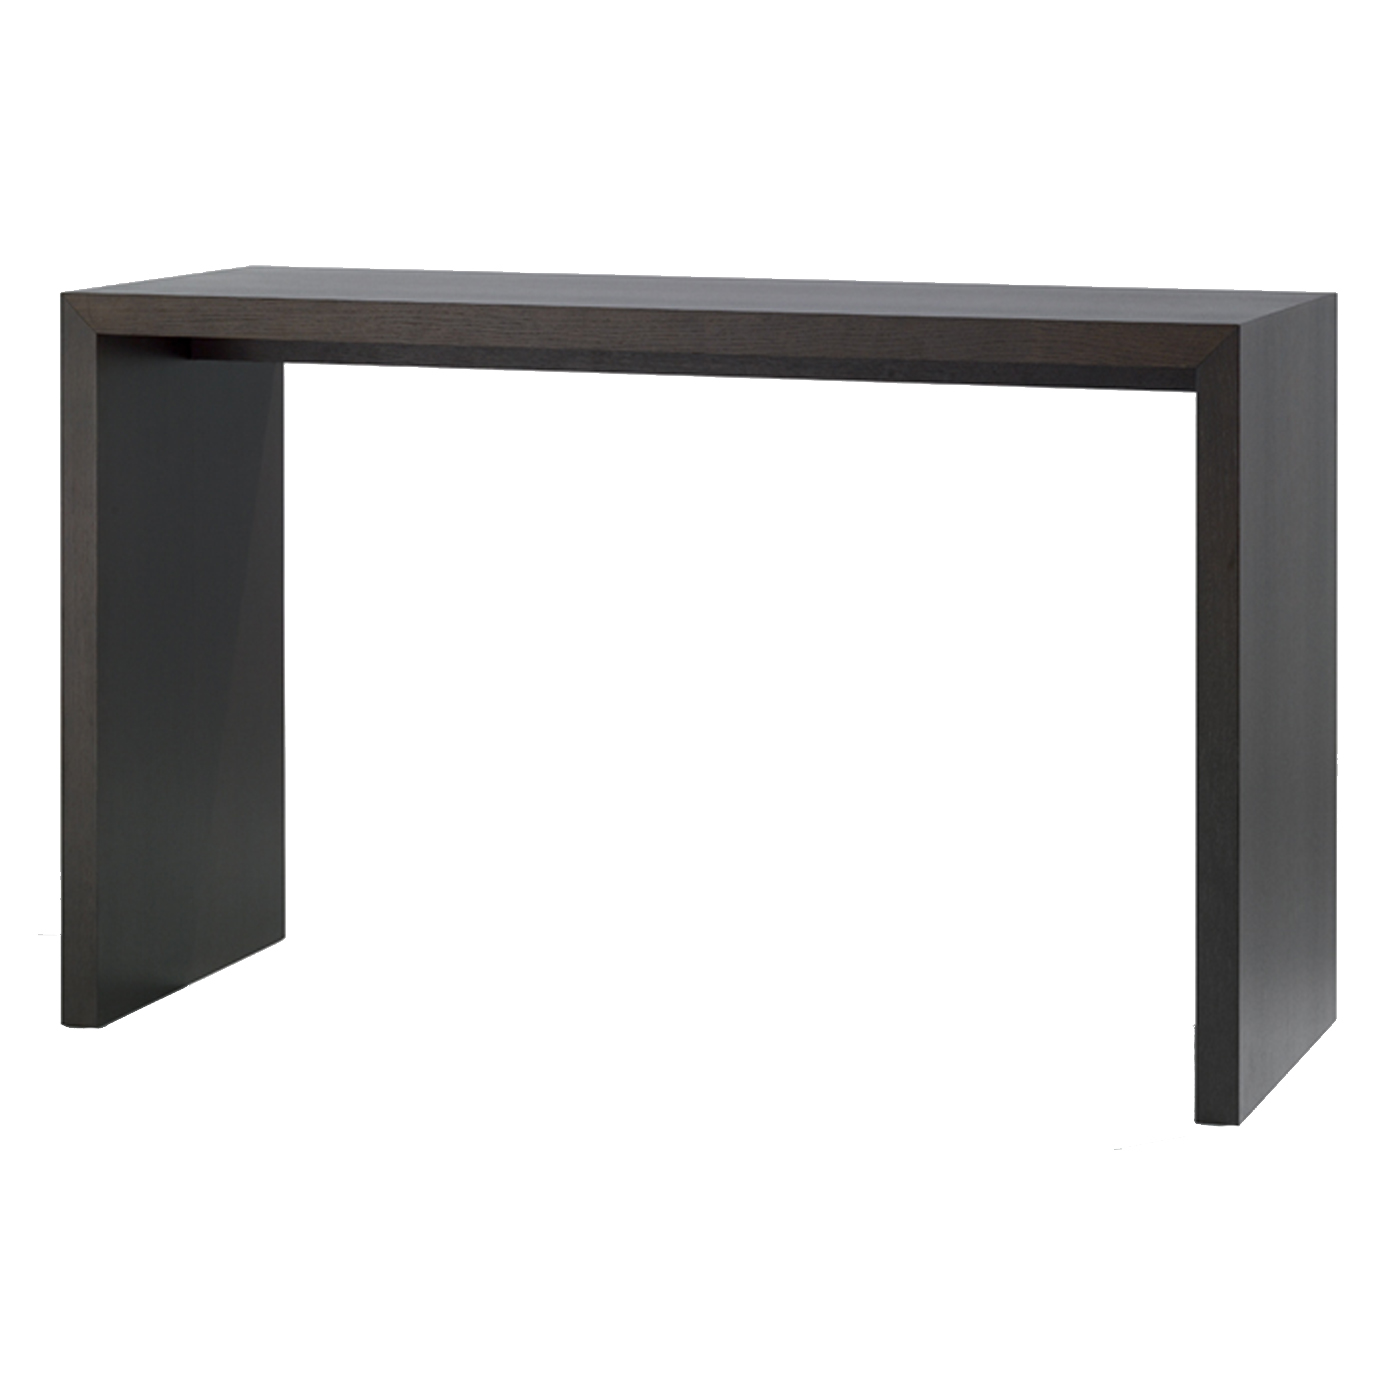 Stunning table de chevet quadra conforama tables hautes de for Table rabattable conforama